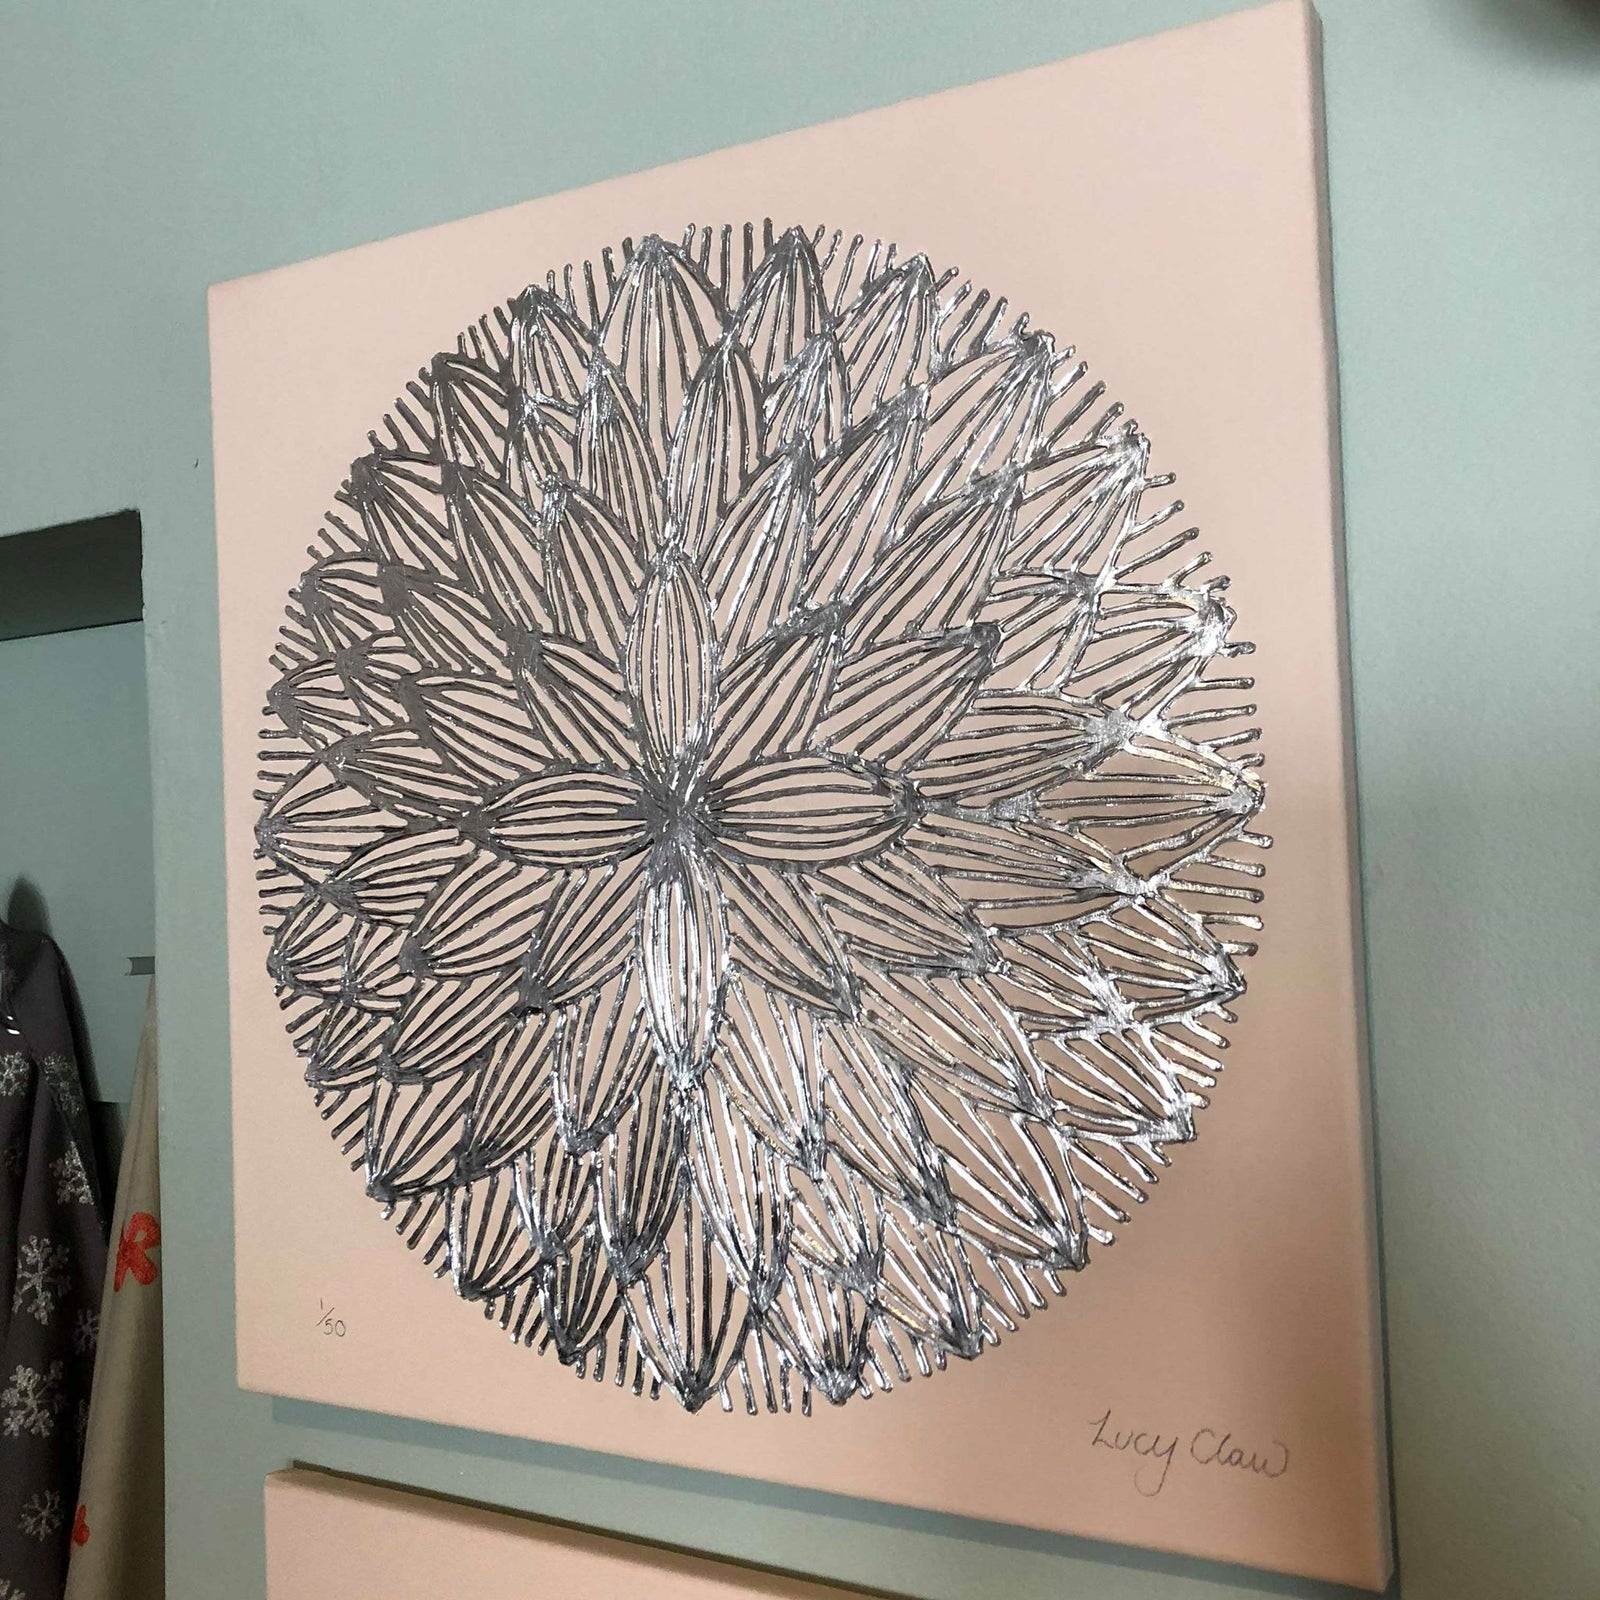 Canvas Wall Art / Pink / Local Artist - Lucy Claw - Applemoon Interiors